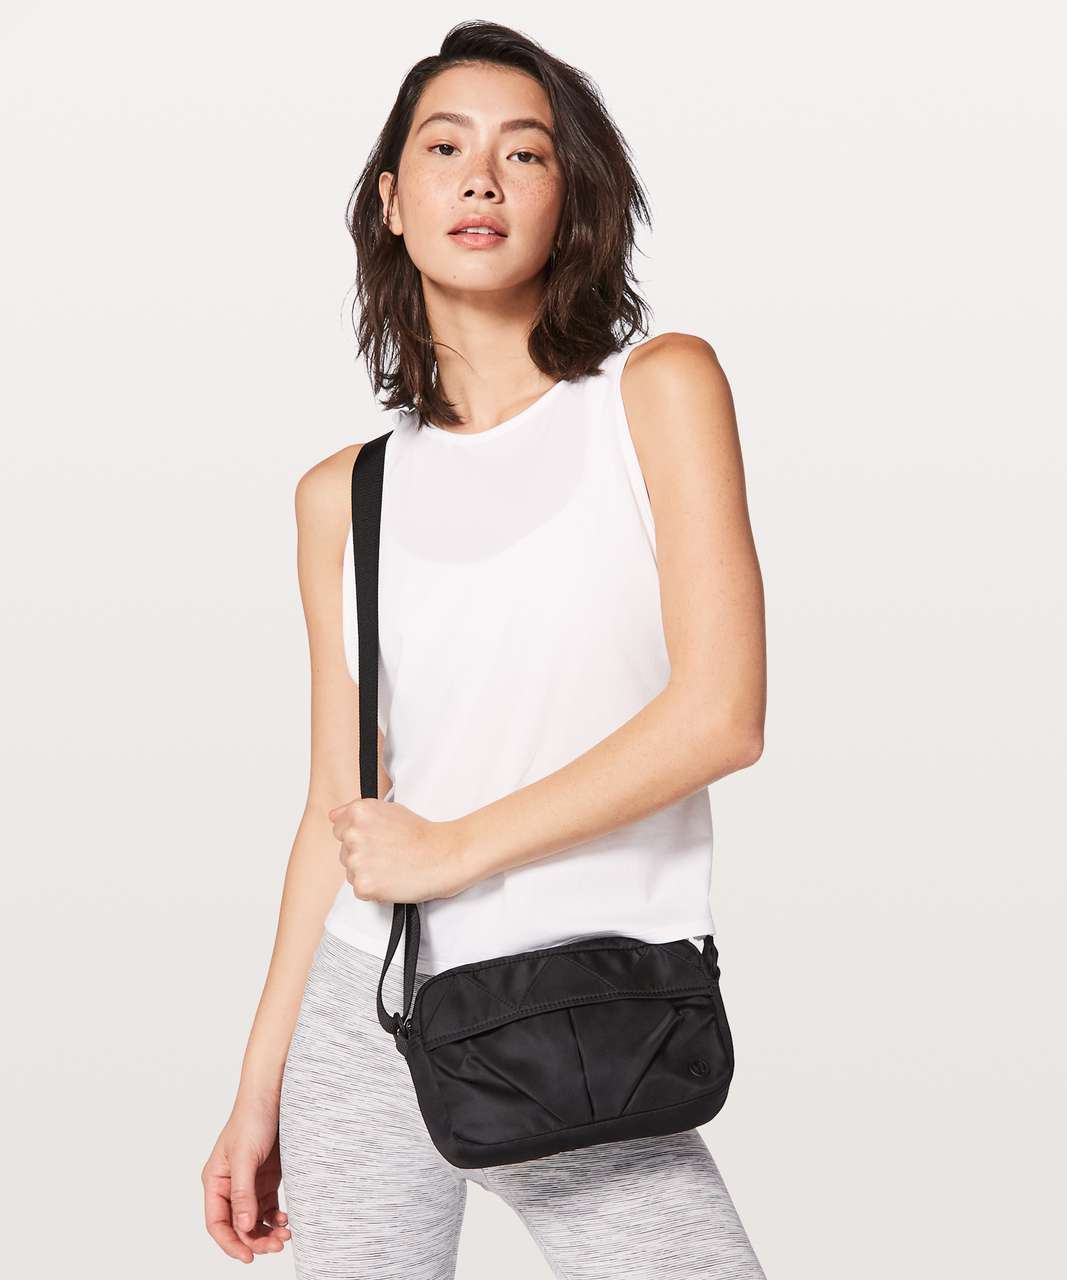 Lululemon City Adventurer Crossbody 3L - Black